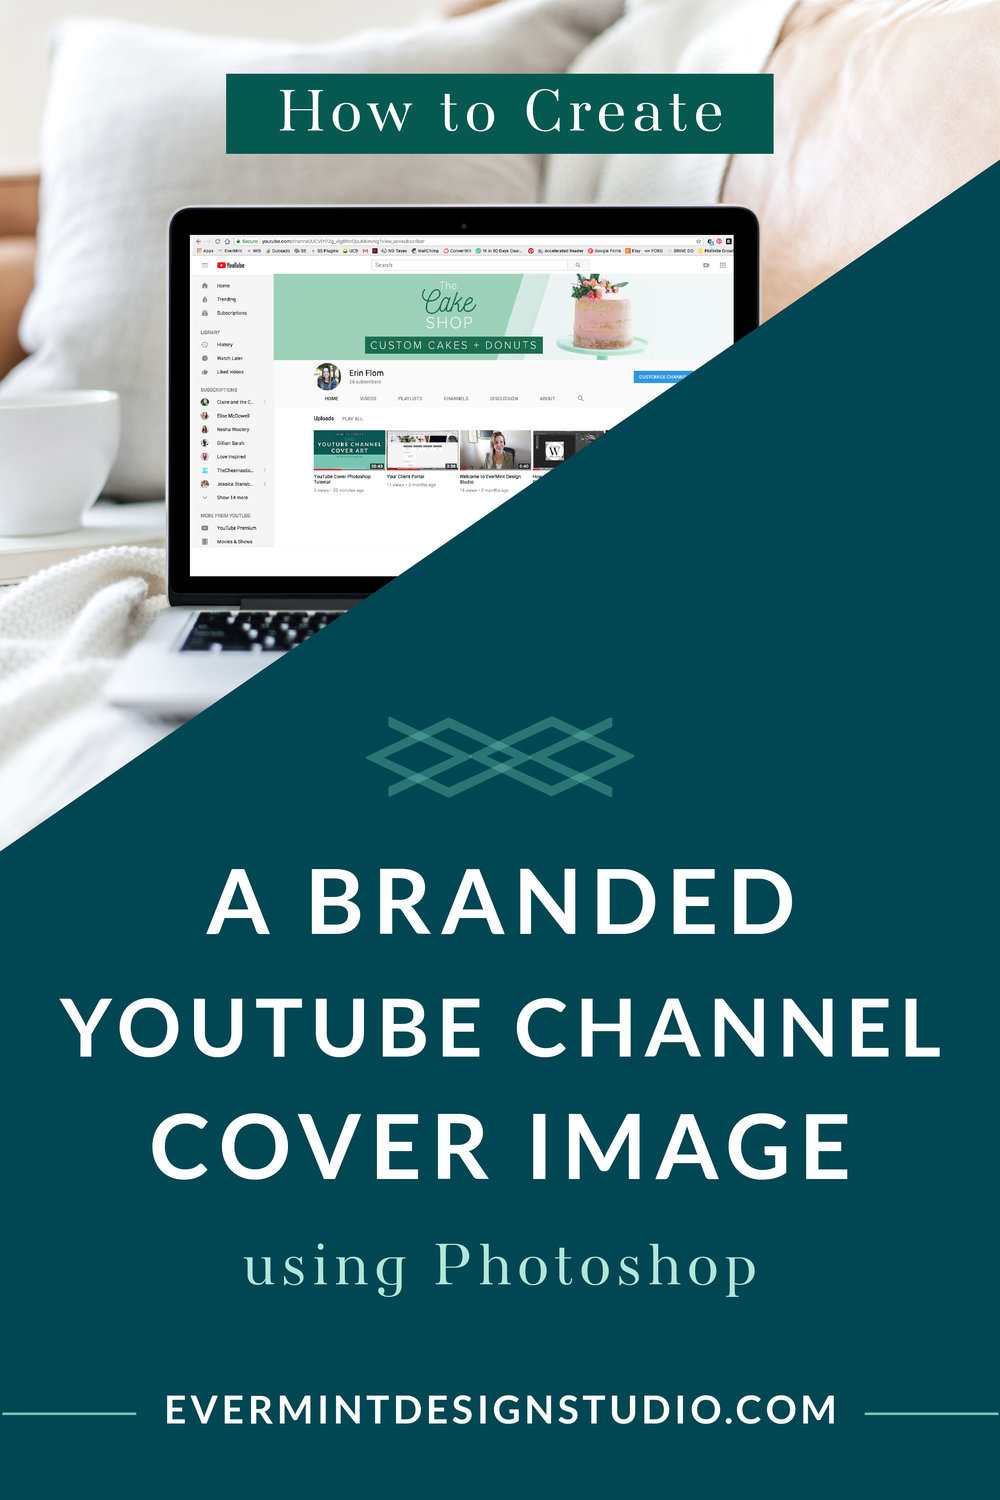 How to Create a Branded YouTube Channel Cover Using Photoshop